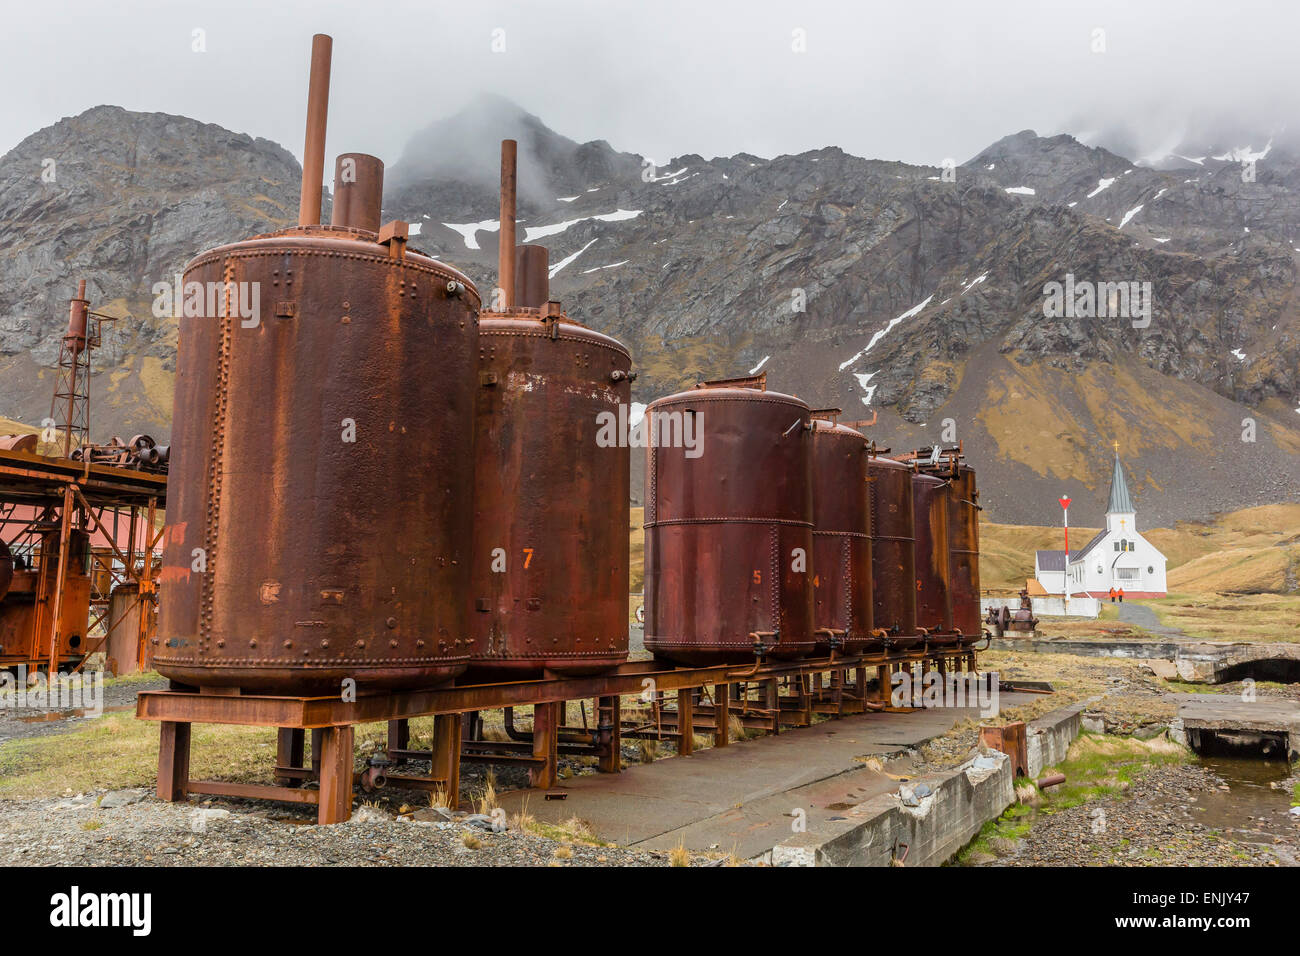 Rusting machinery at the abandoned whaling station in Grytviken Harbor, South Georgia, Polar Regions - Stock Image